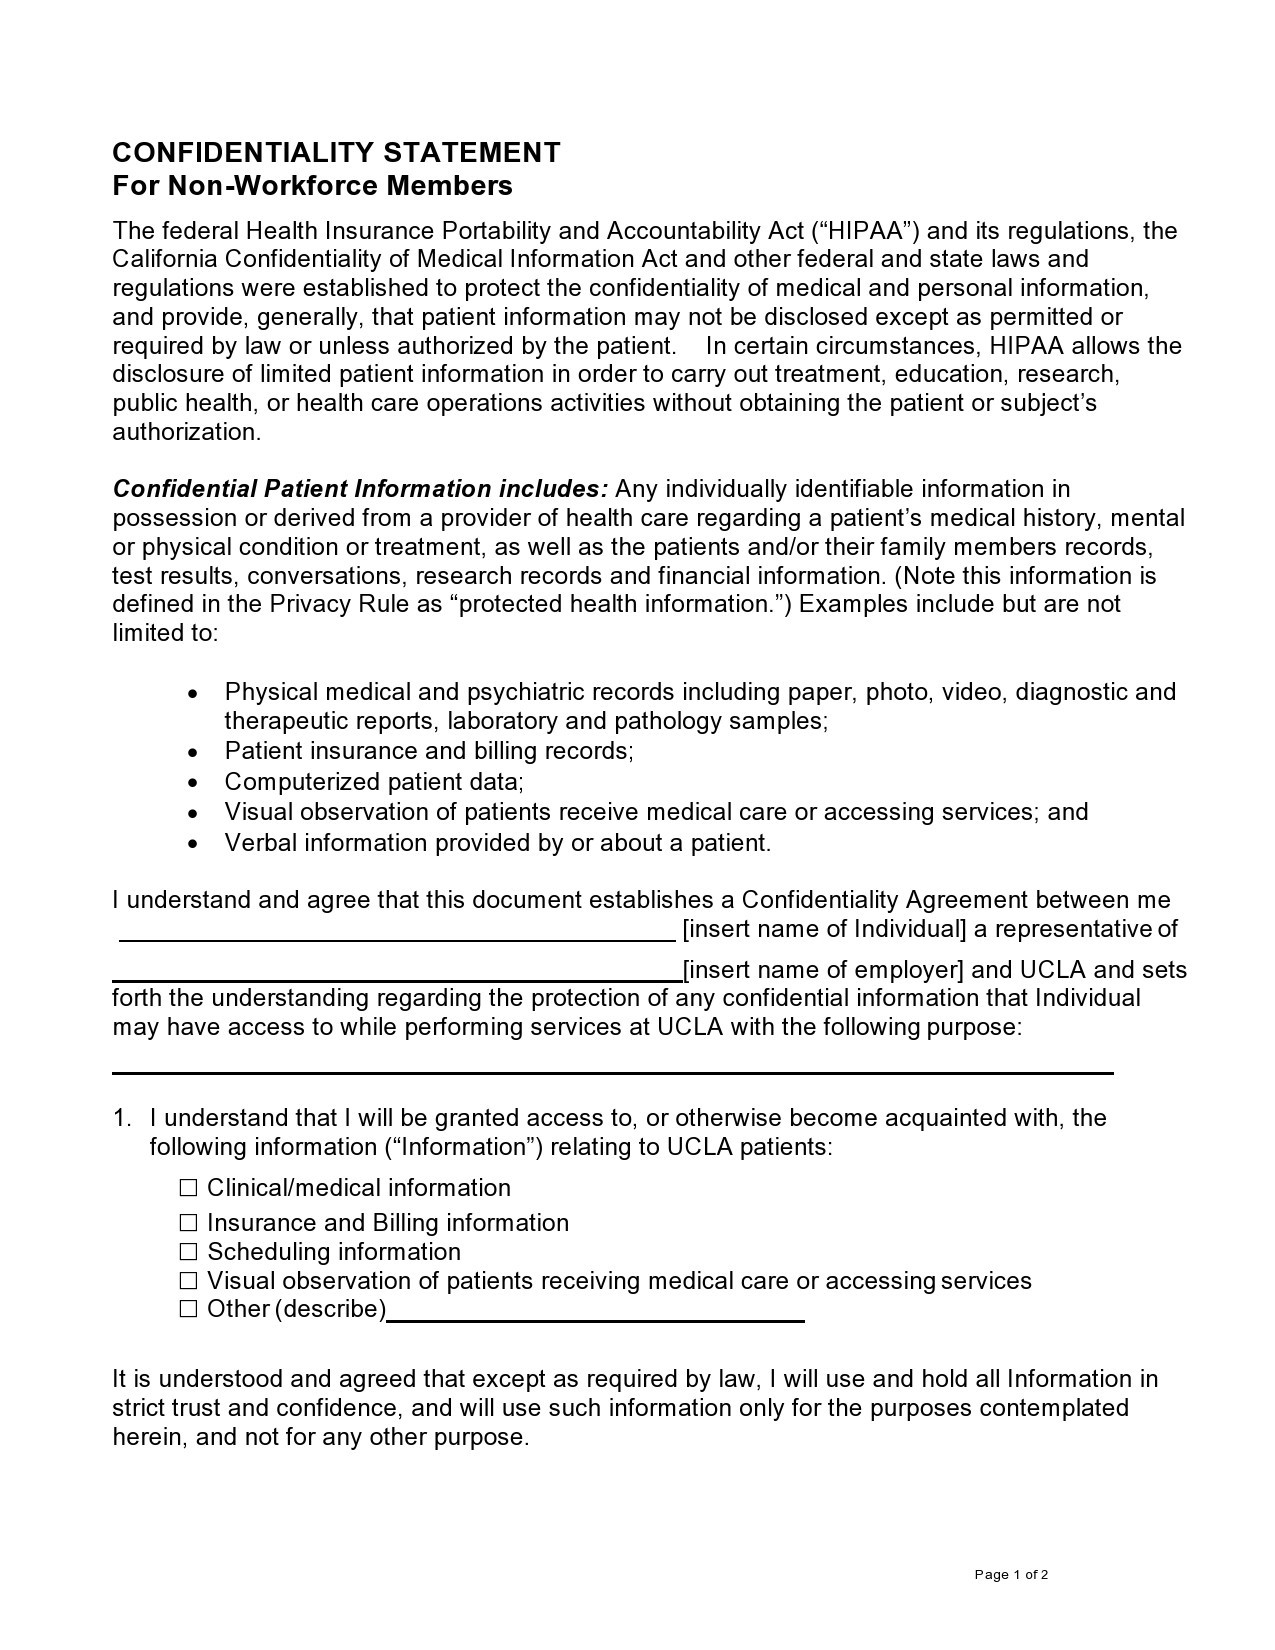 Free confidentiality statement 11